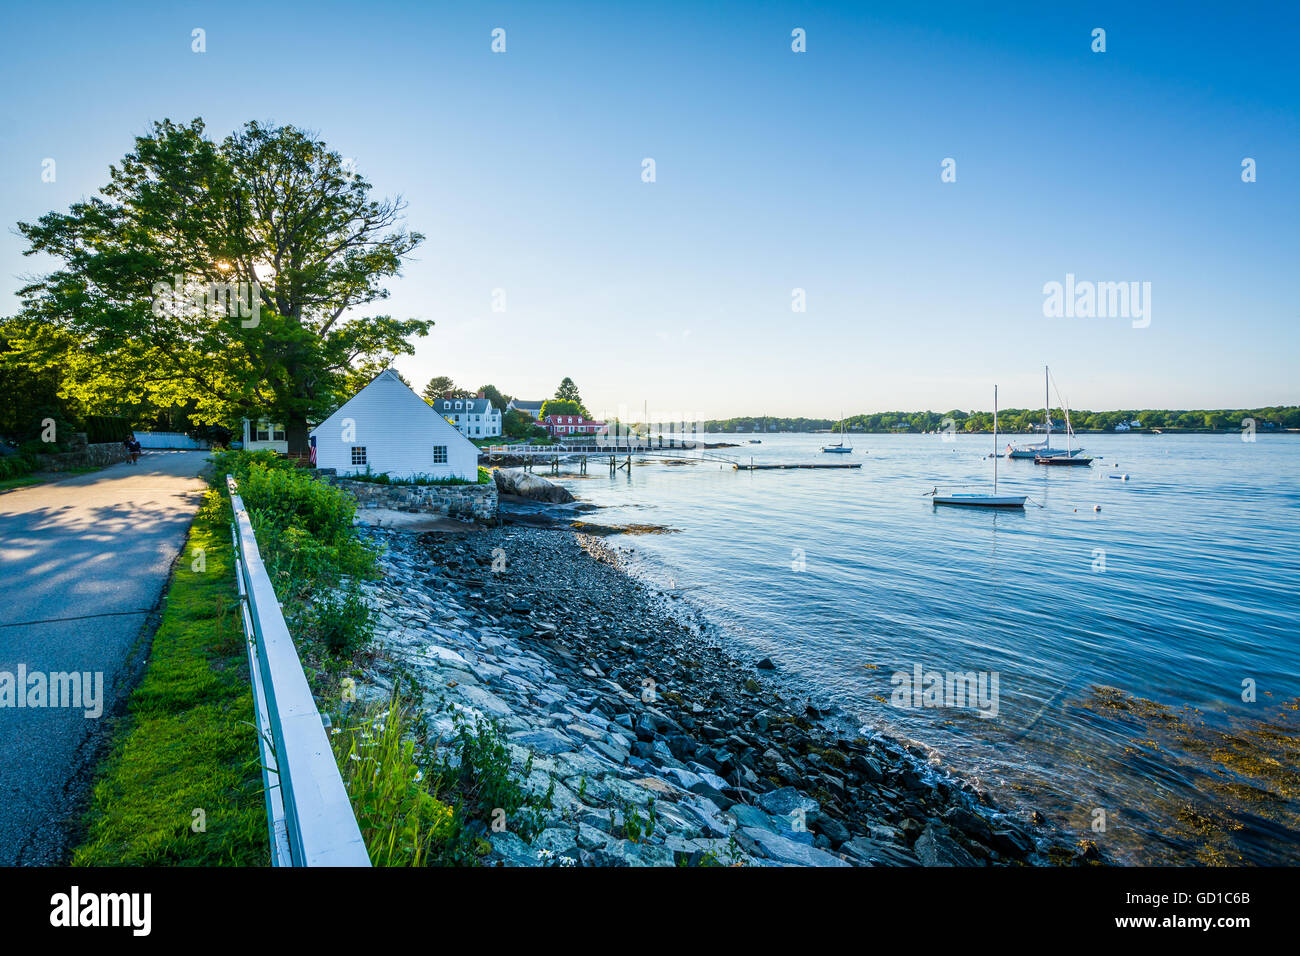 River Road and the Piscataqua River, in New Castle, Portsmouth, New Hampshire. - Stock Image